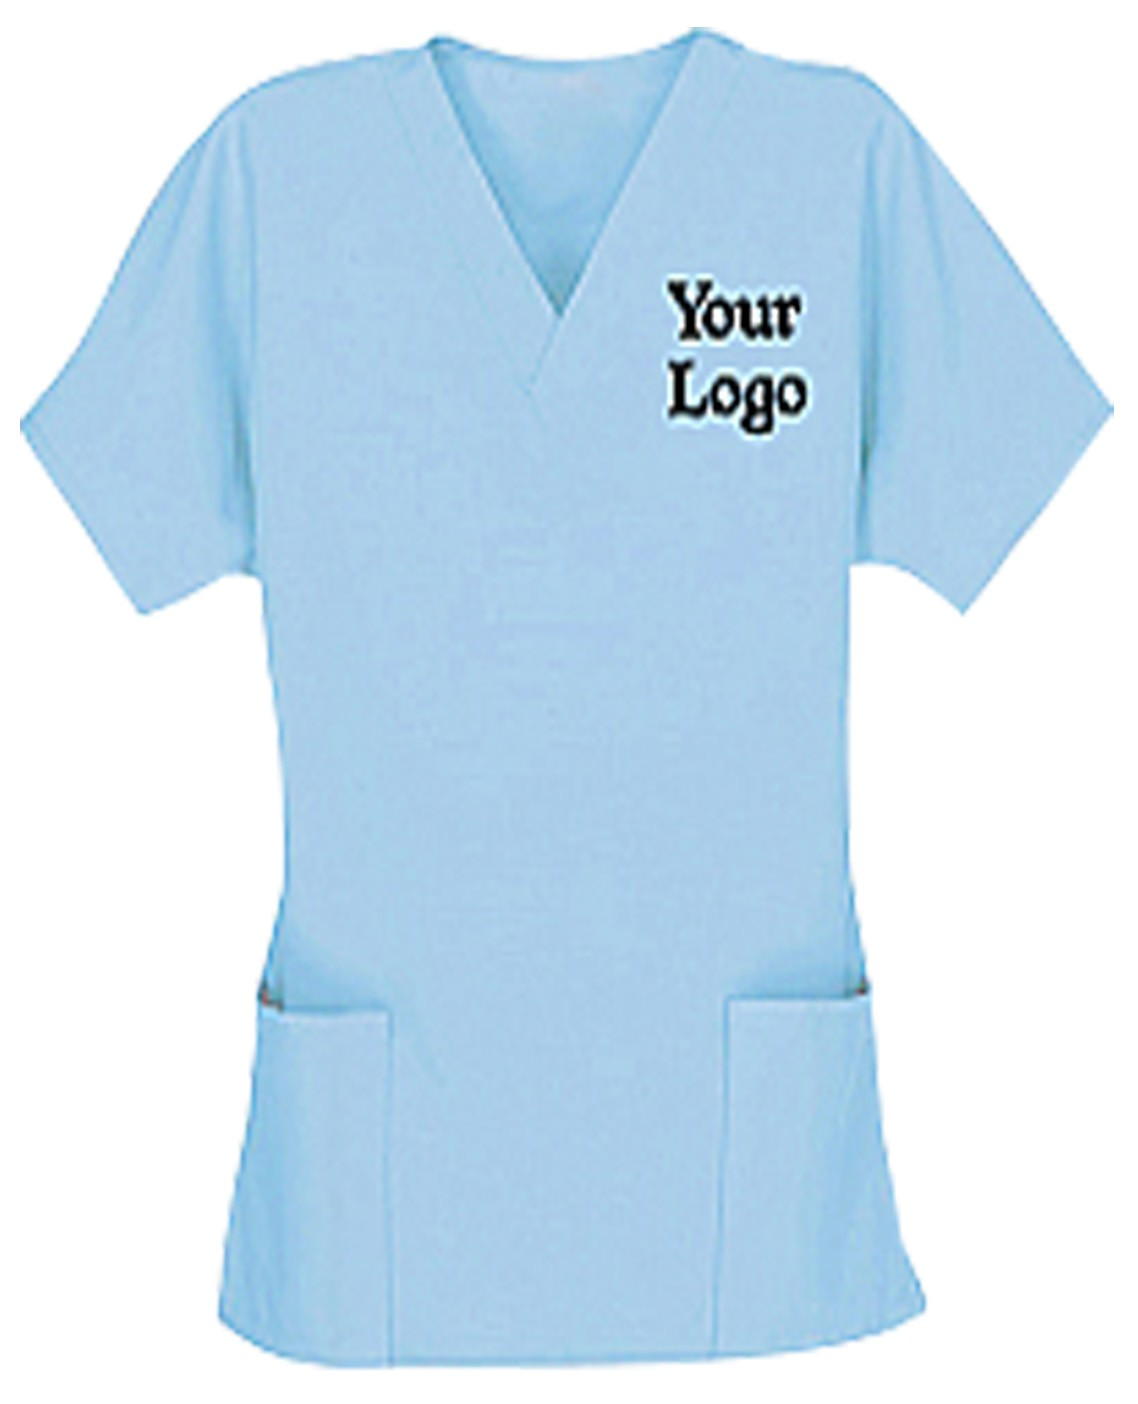 SCHOOL/COLLEGE SCRUBS TOPS HALF SLEEVE (V NECK TOPS, JACKET, LAB COATS)